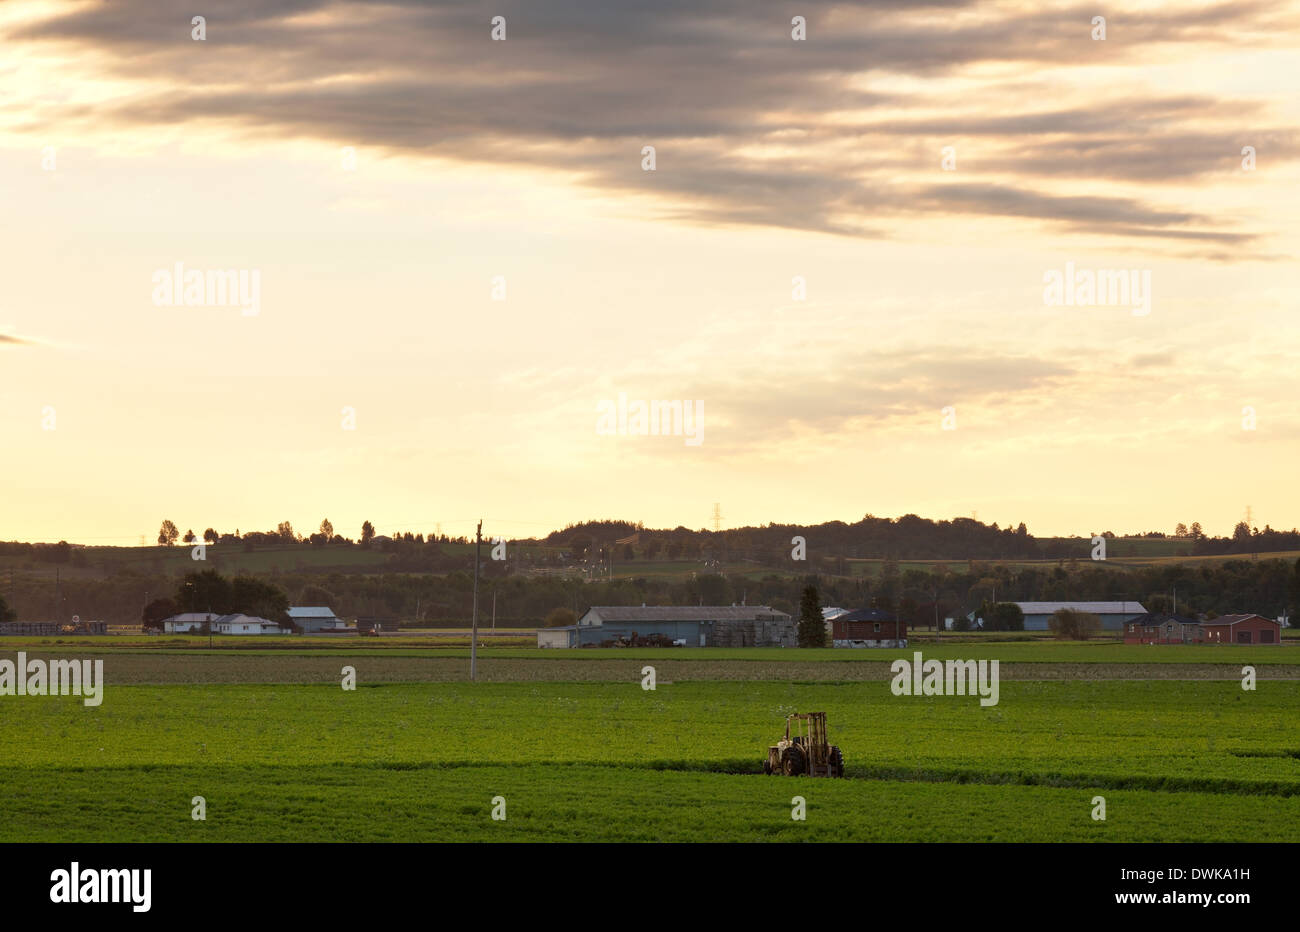 A forklift sits in a field of carrots in the Holland Marsh agricultural area, Bradford West Gwillimbury, Ontario, Canada. - Stock Image